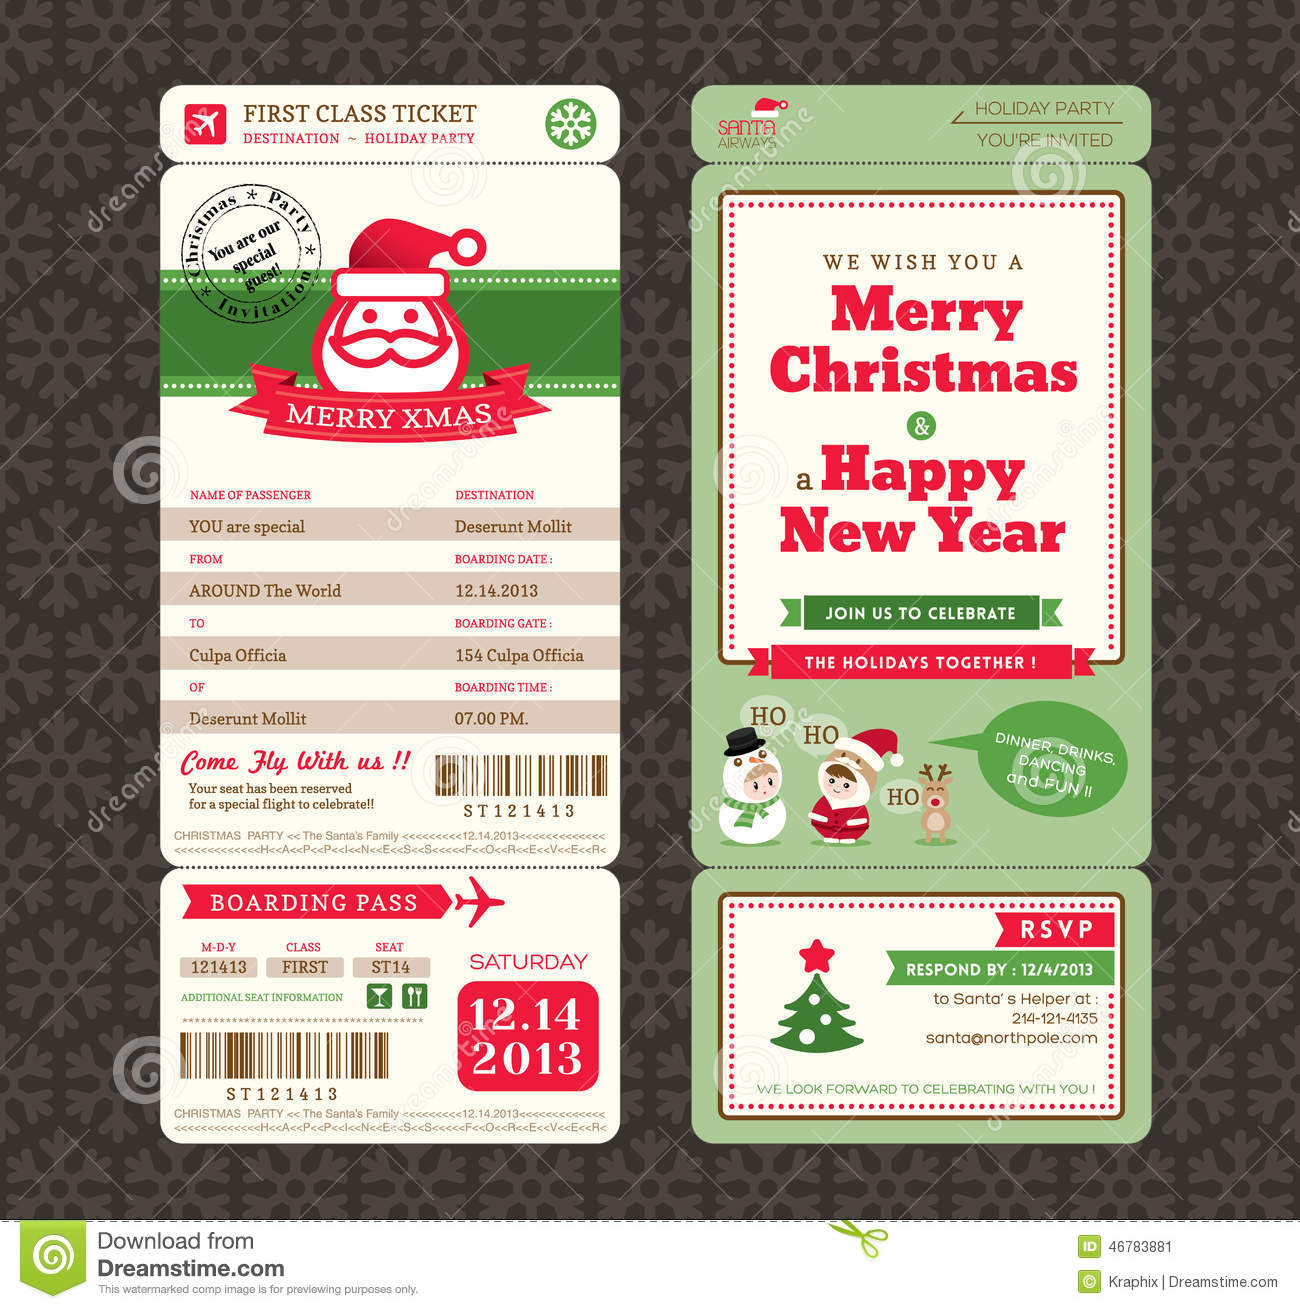 Christmas Party Ticket Template Free: Christmas Card Design Boarding Pass Ticket Template Stock